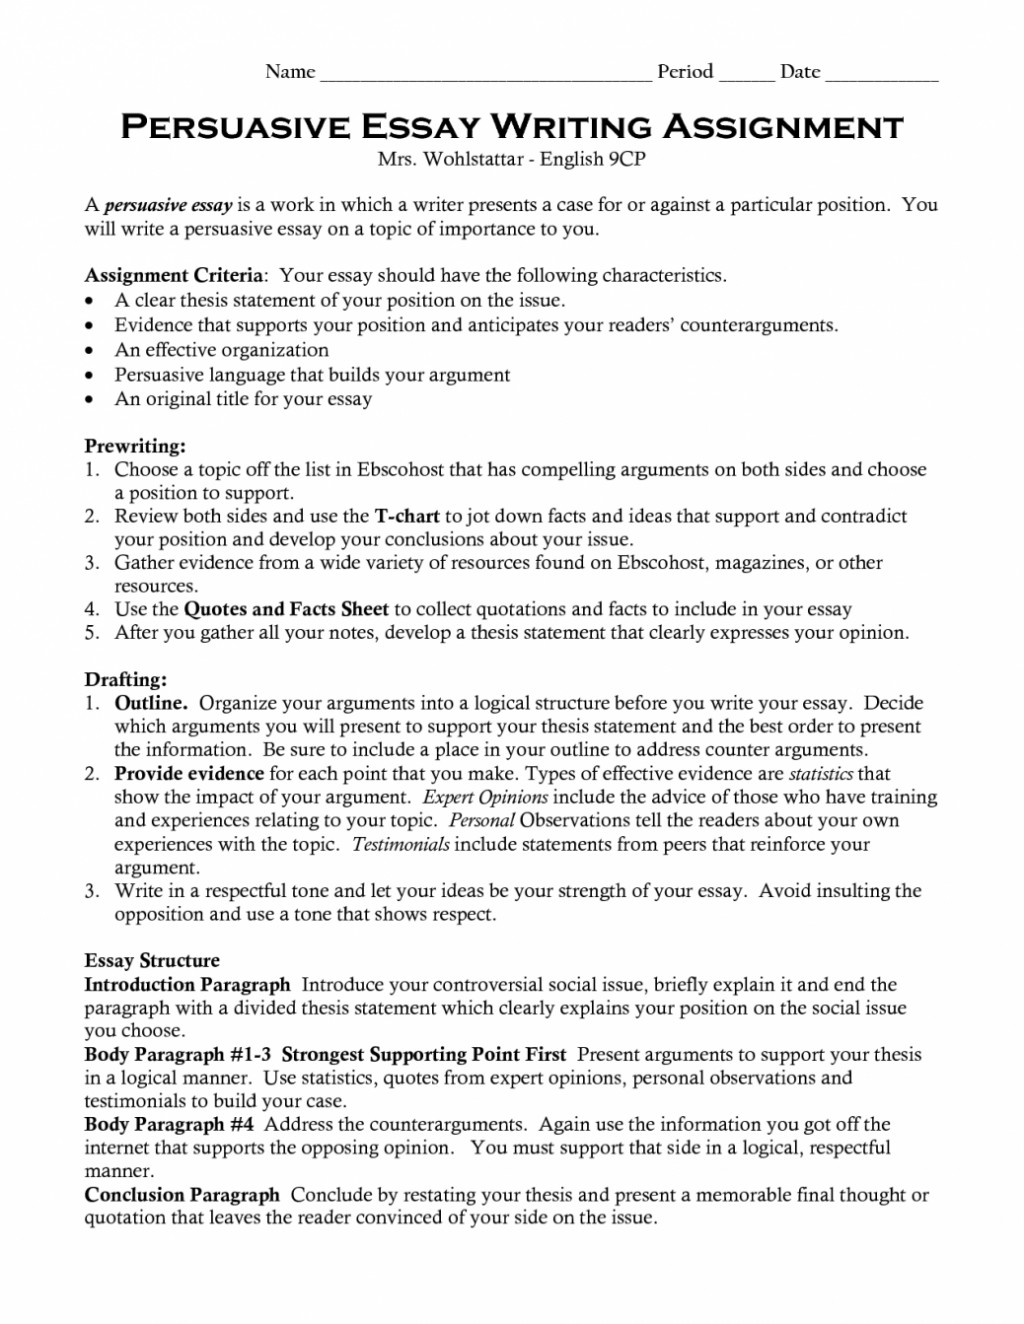 008 Thesis Statement On Bullying Template V0cthfrtay Persuasive Examples Argumentative Example Tremendous 1038x1343 Research Best Paper Large